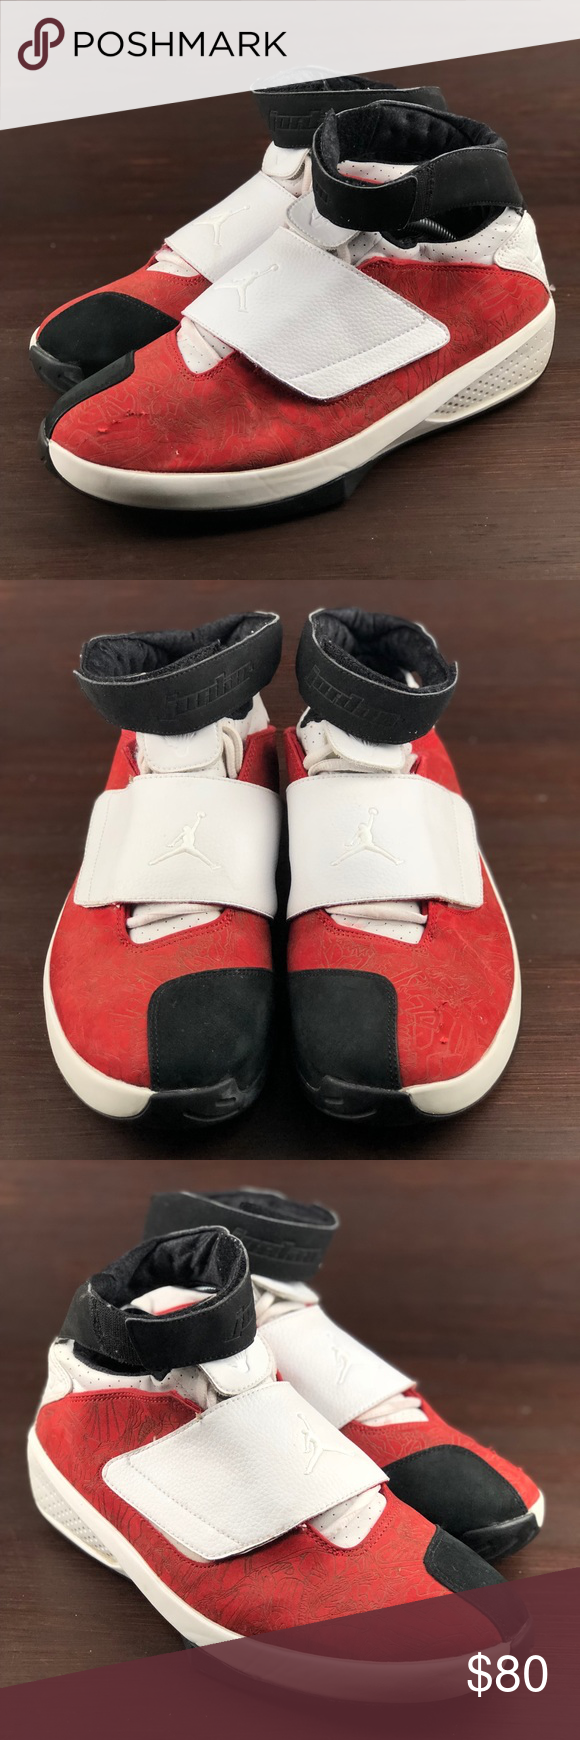 new arrival 57f7b 53af3 Nike Air Jordan 20 XX OG Midwest Condition  Pre-owned. See pictures for